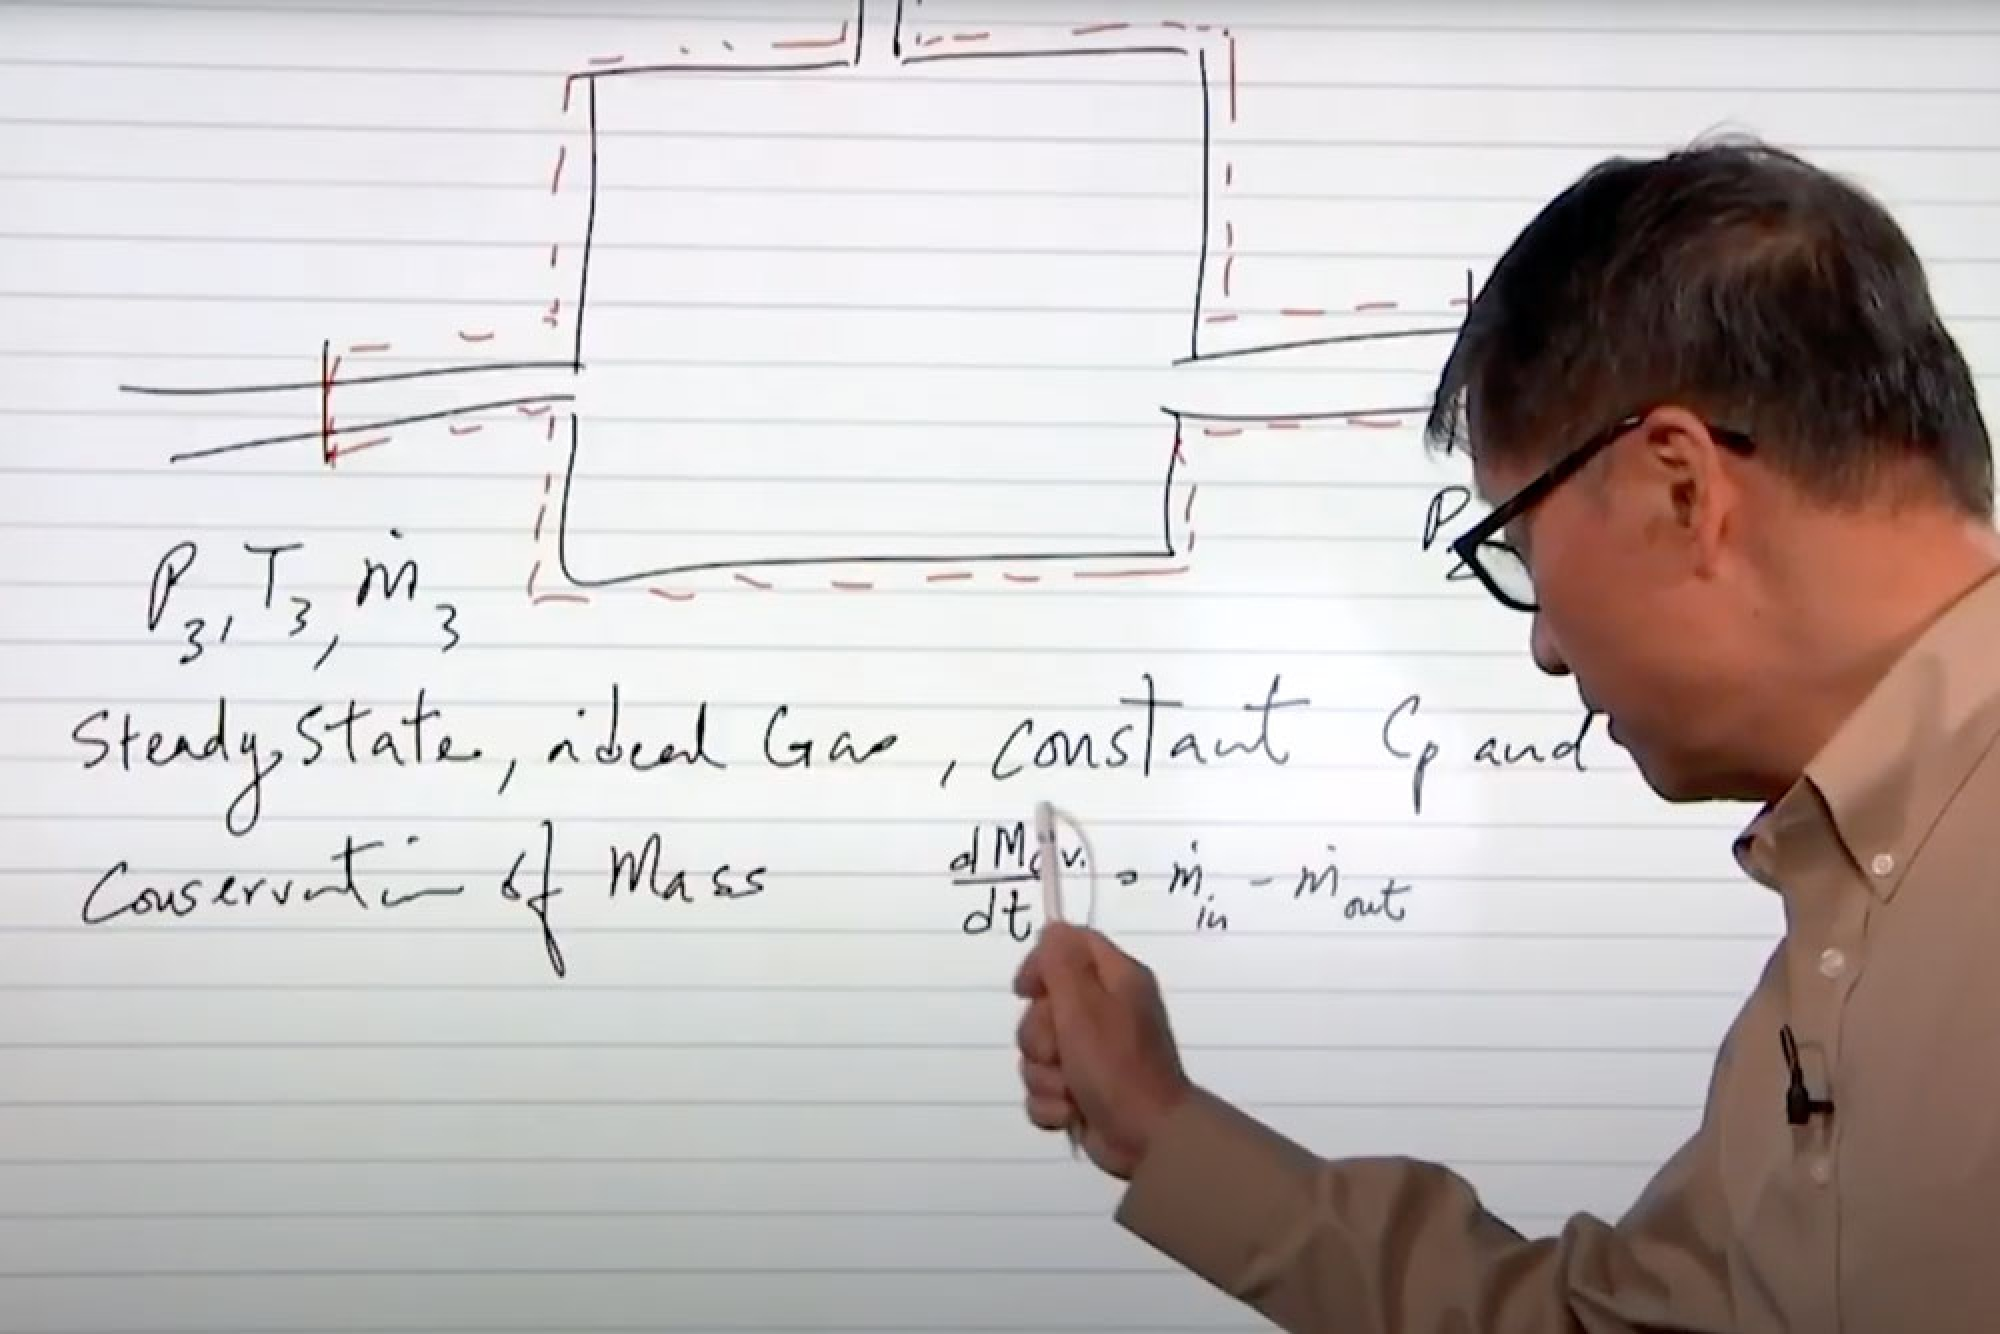 Instructor pointing to figures on a digital white board screen